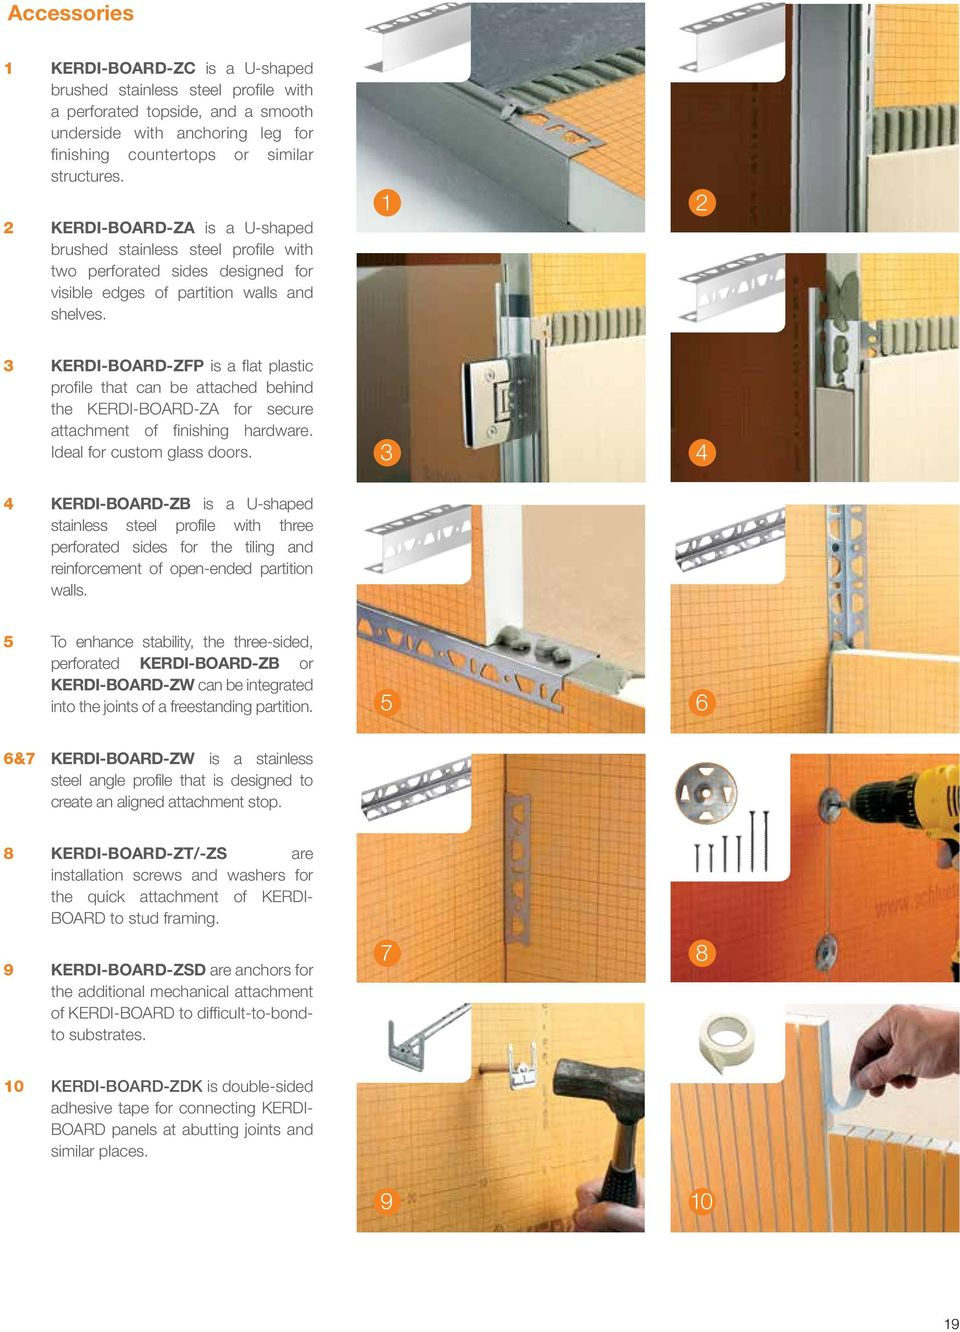 1 2 3 KERDI-BOARD-ZFP is a flat plastic profile that can be attached behind the KERDI-BOARD-ZA for secure attachment of finishing hardware. Ideal for custom glass doors.